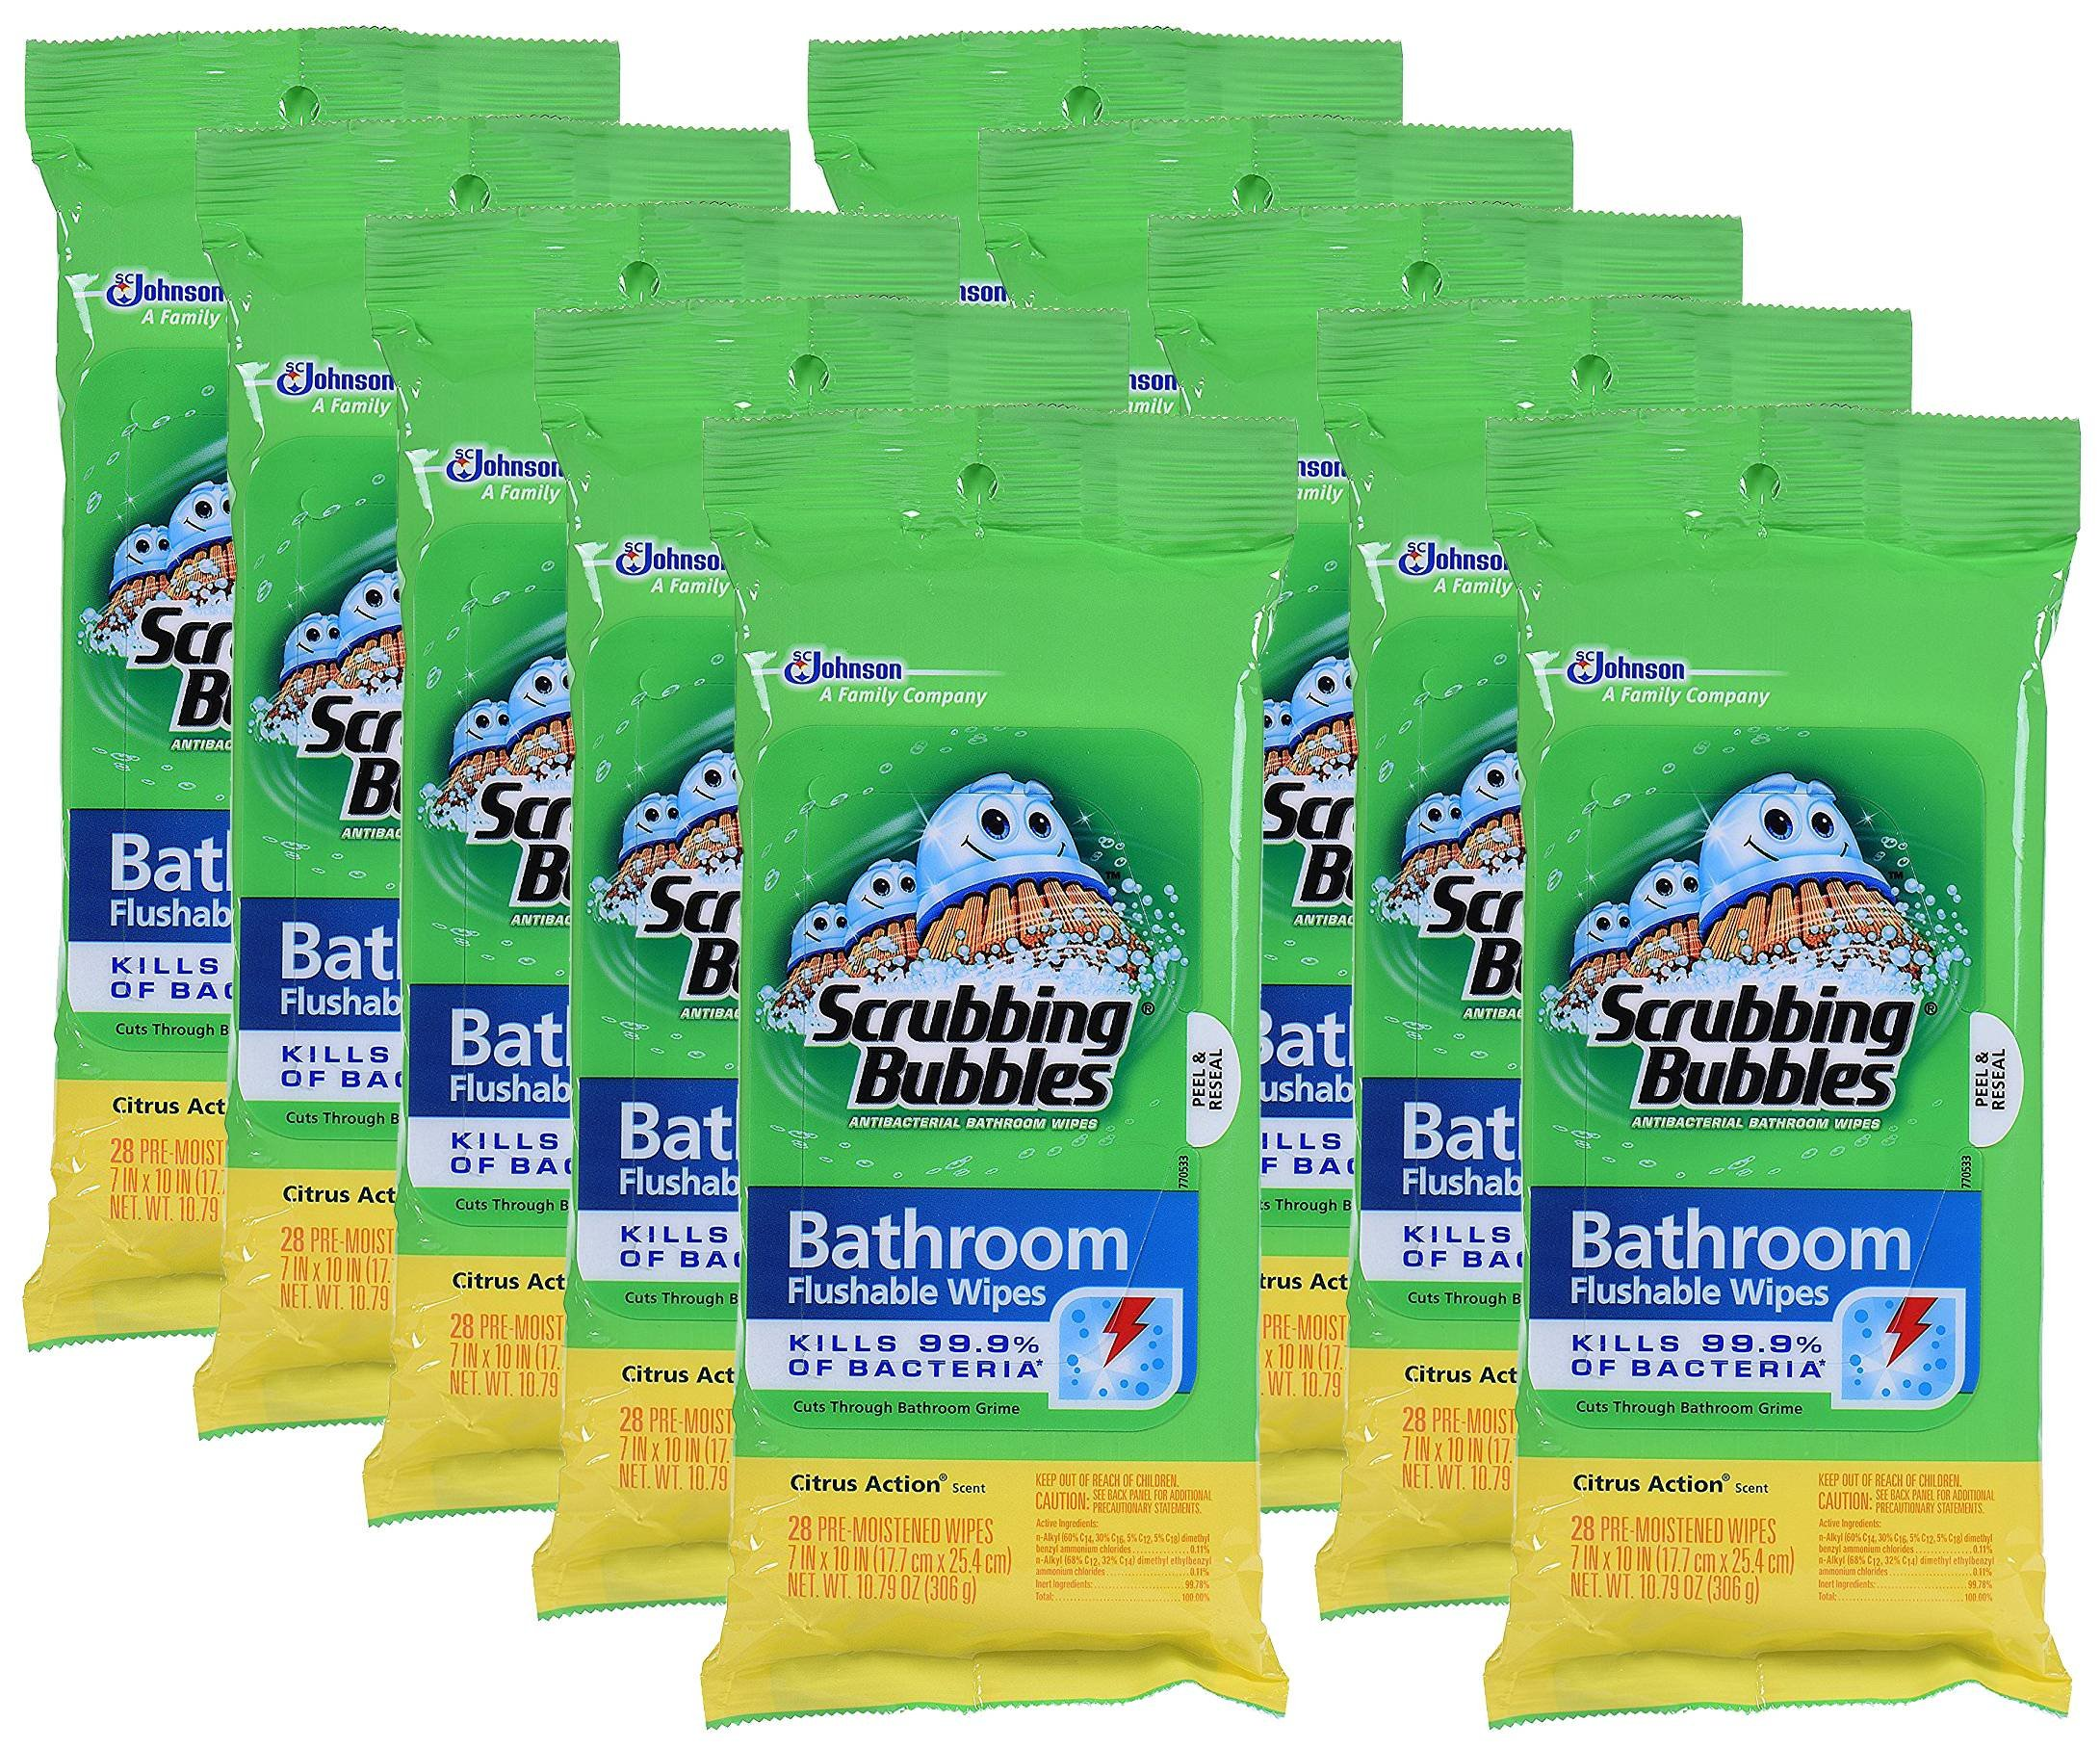 Scrubbing Bubbles Antibacterial Bathroom Flushable Wipes stRHH, 28 Count, 10Pack by Scrubbing Bubbles